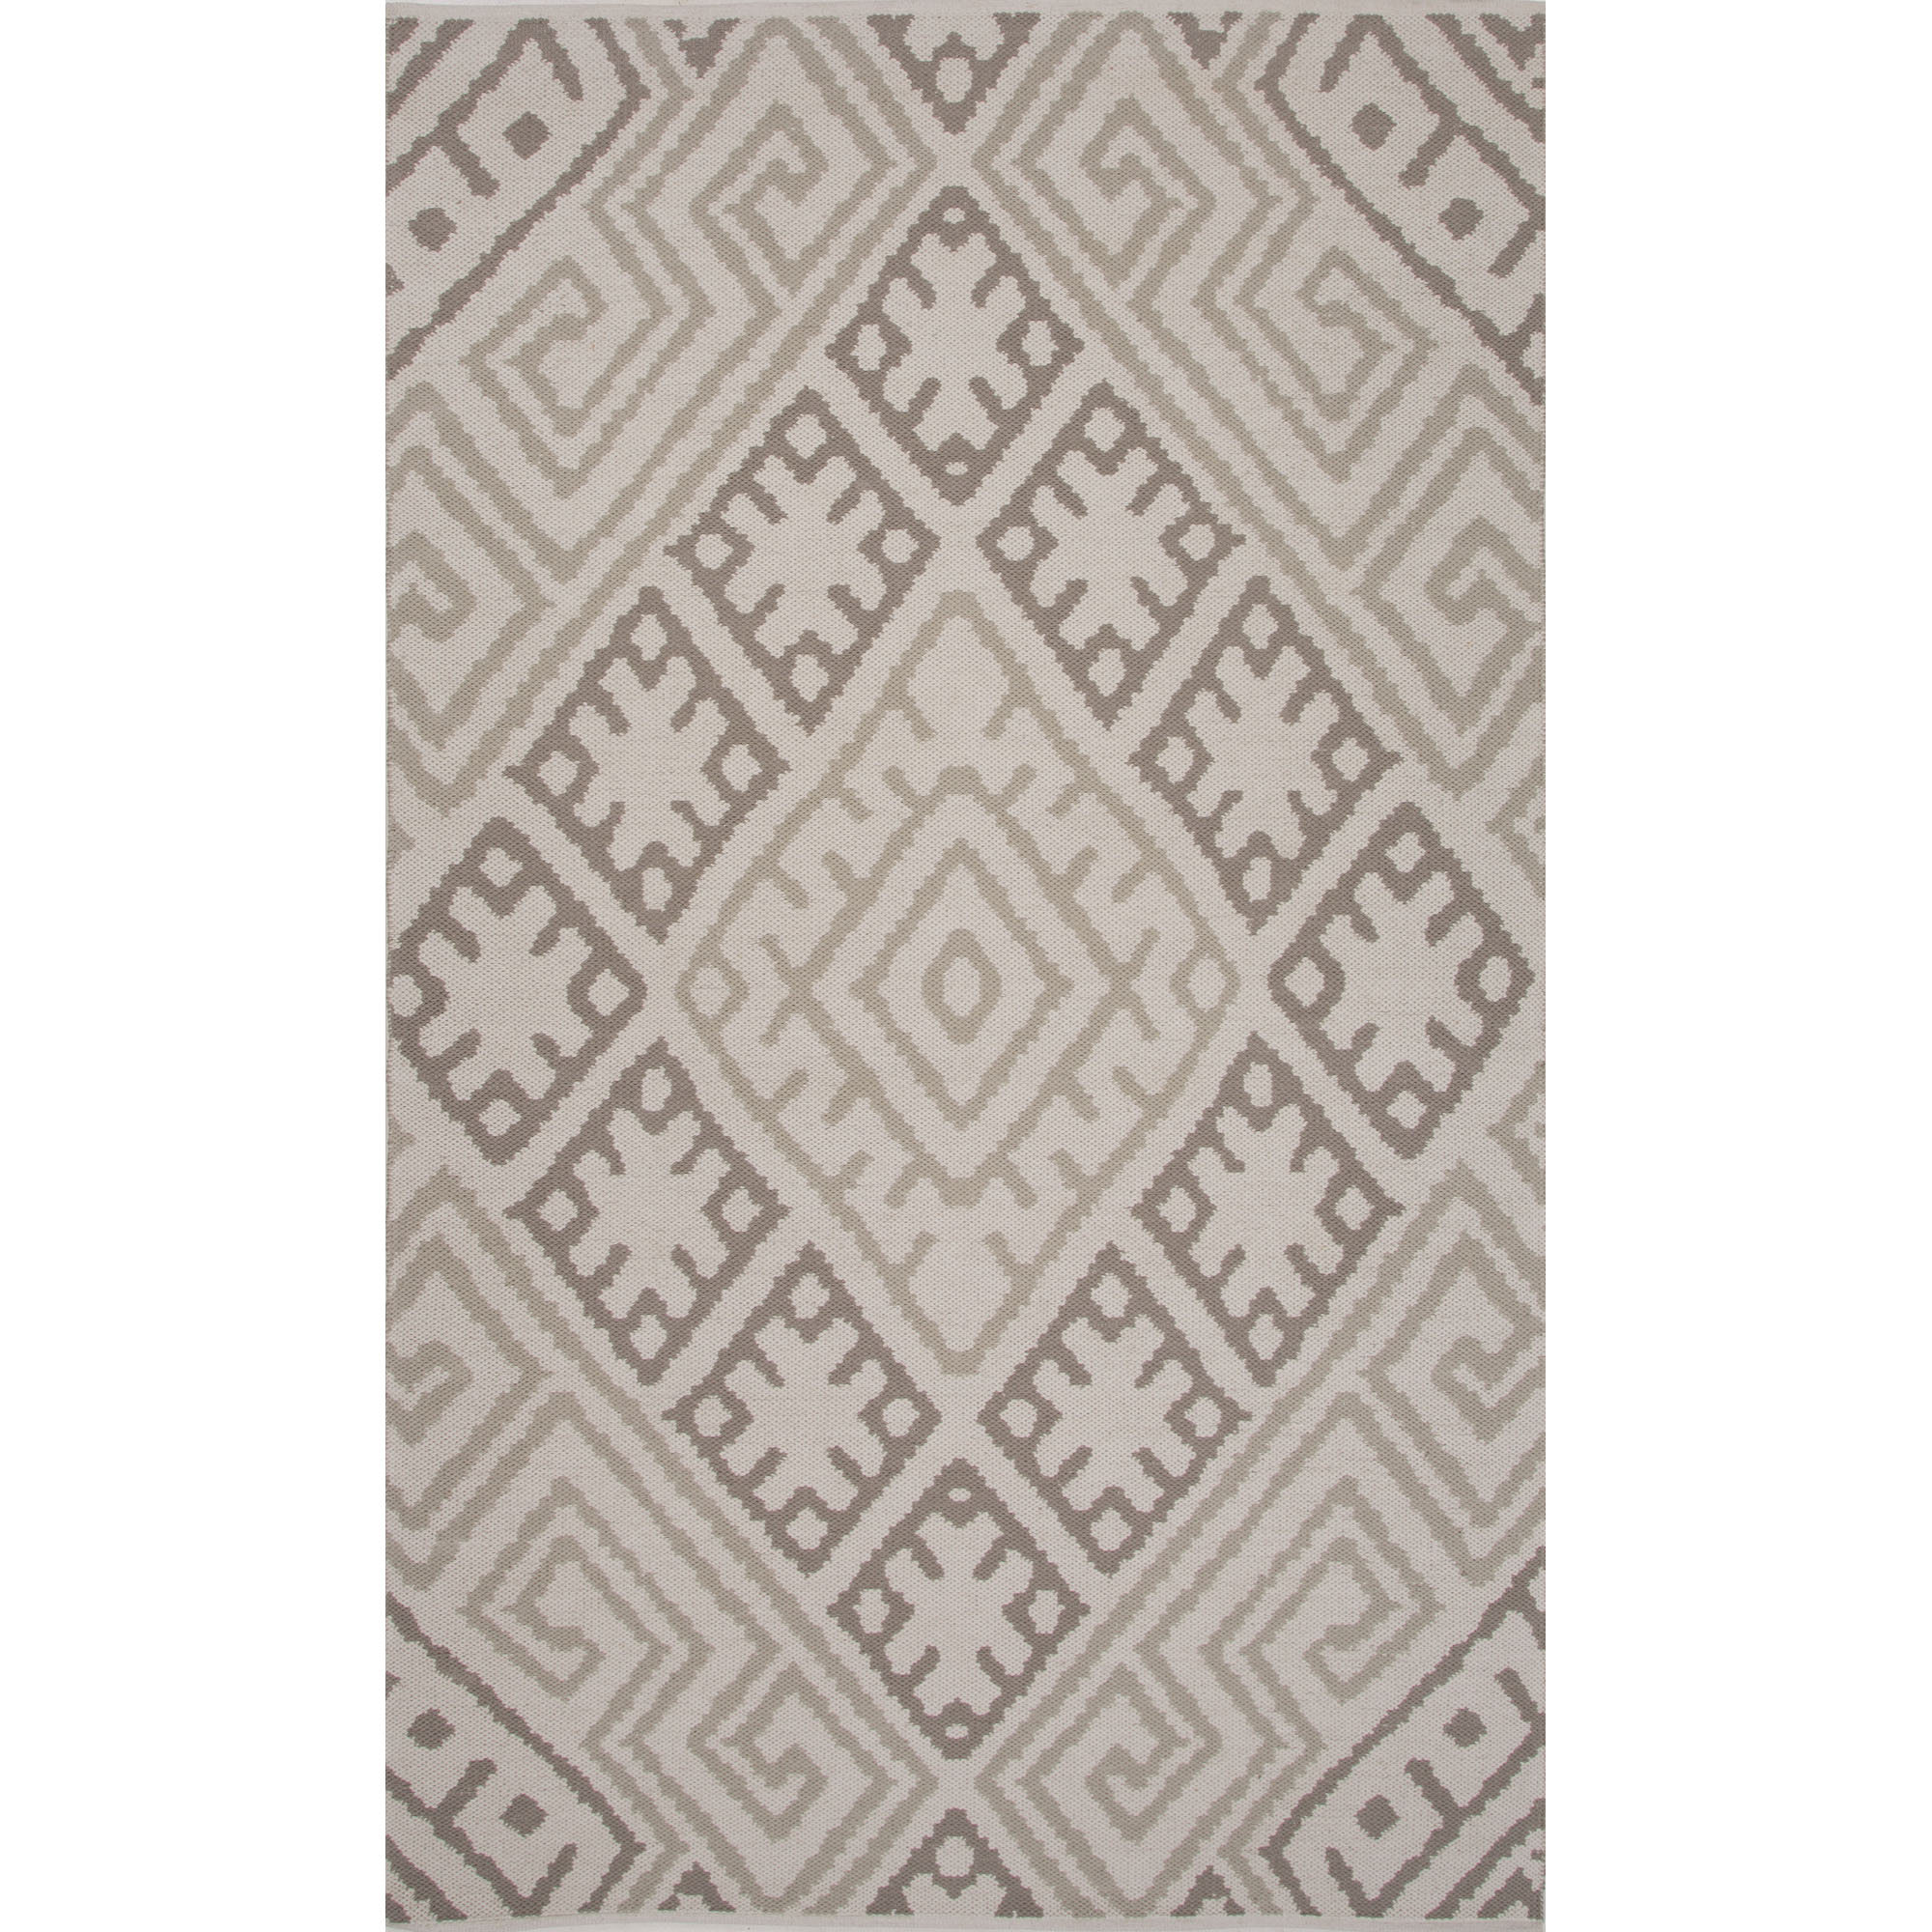 JAIPUR Rugs Traditions Modern Cotton Flat Weave 5 x 8 Rug - Item Number: RUG120670